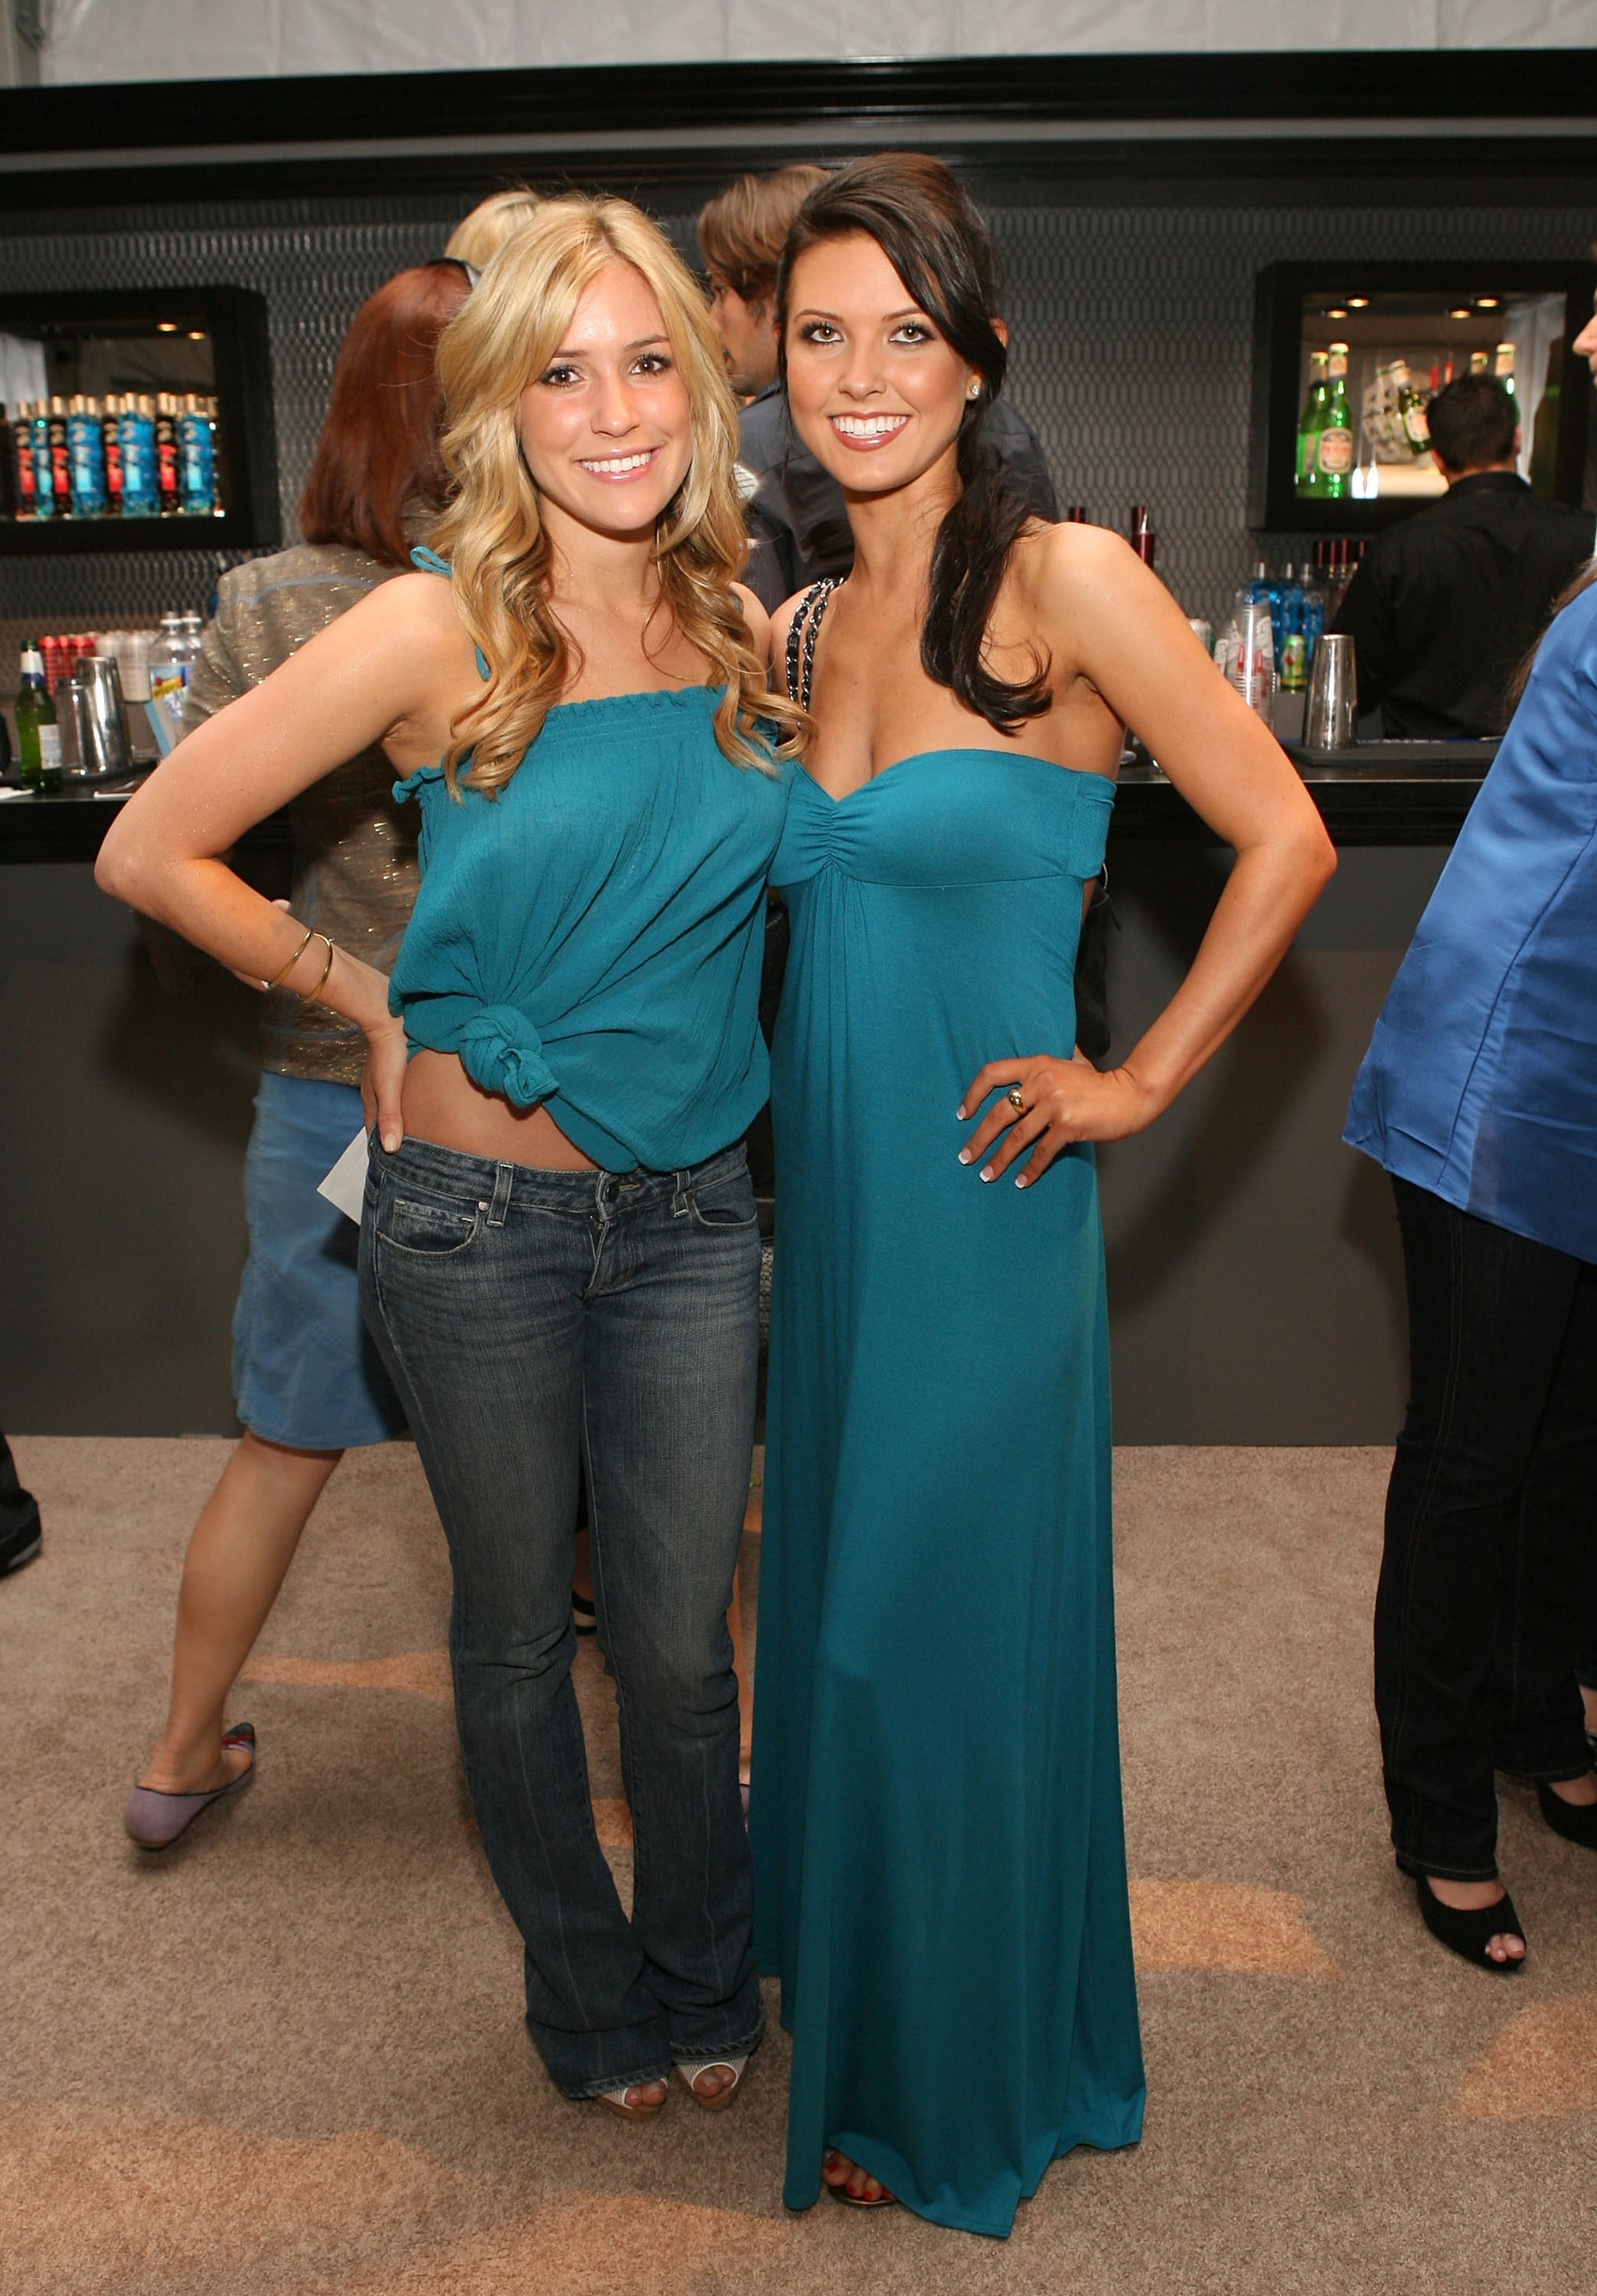 Kristin Cavallari and Audrina Patridge matched at NY Fashion Week in March 2008.